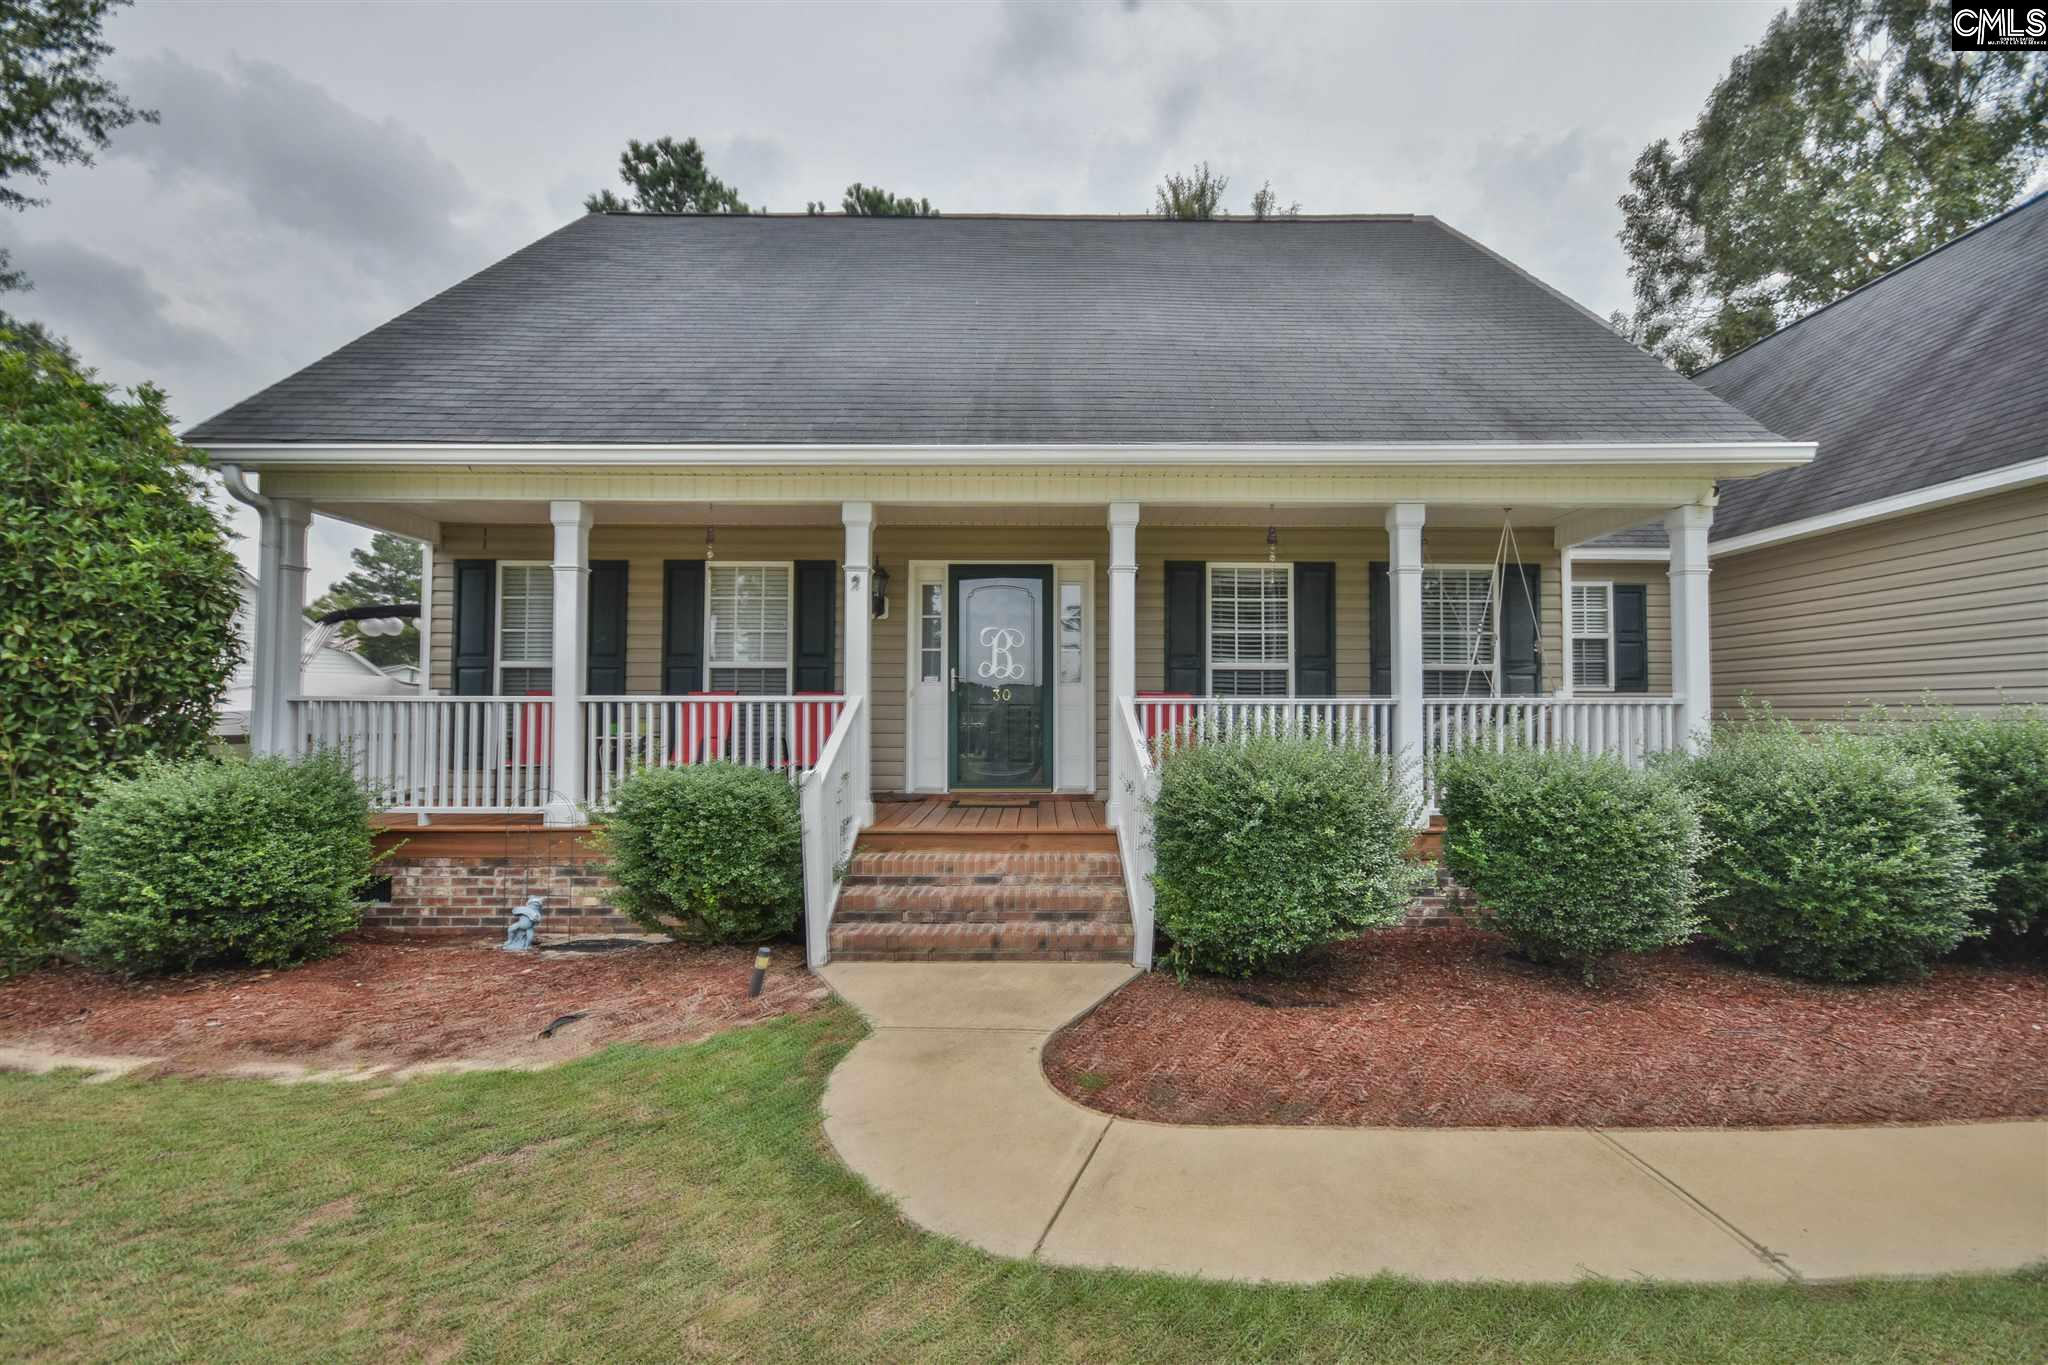 30  Glad Tidings Lugoff, SC 29078-9552